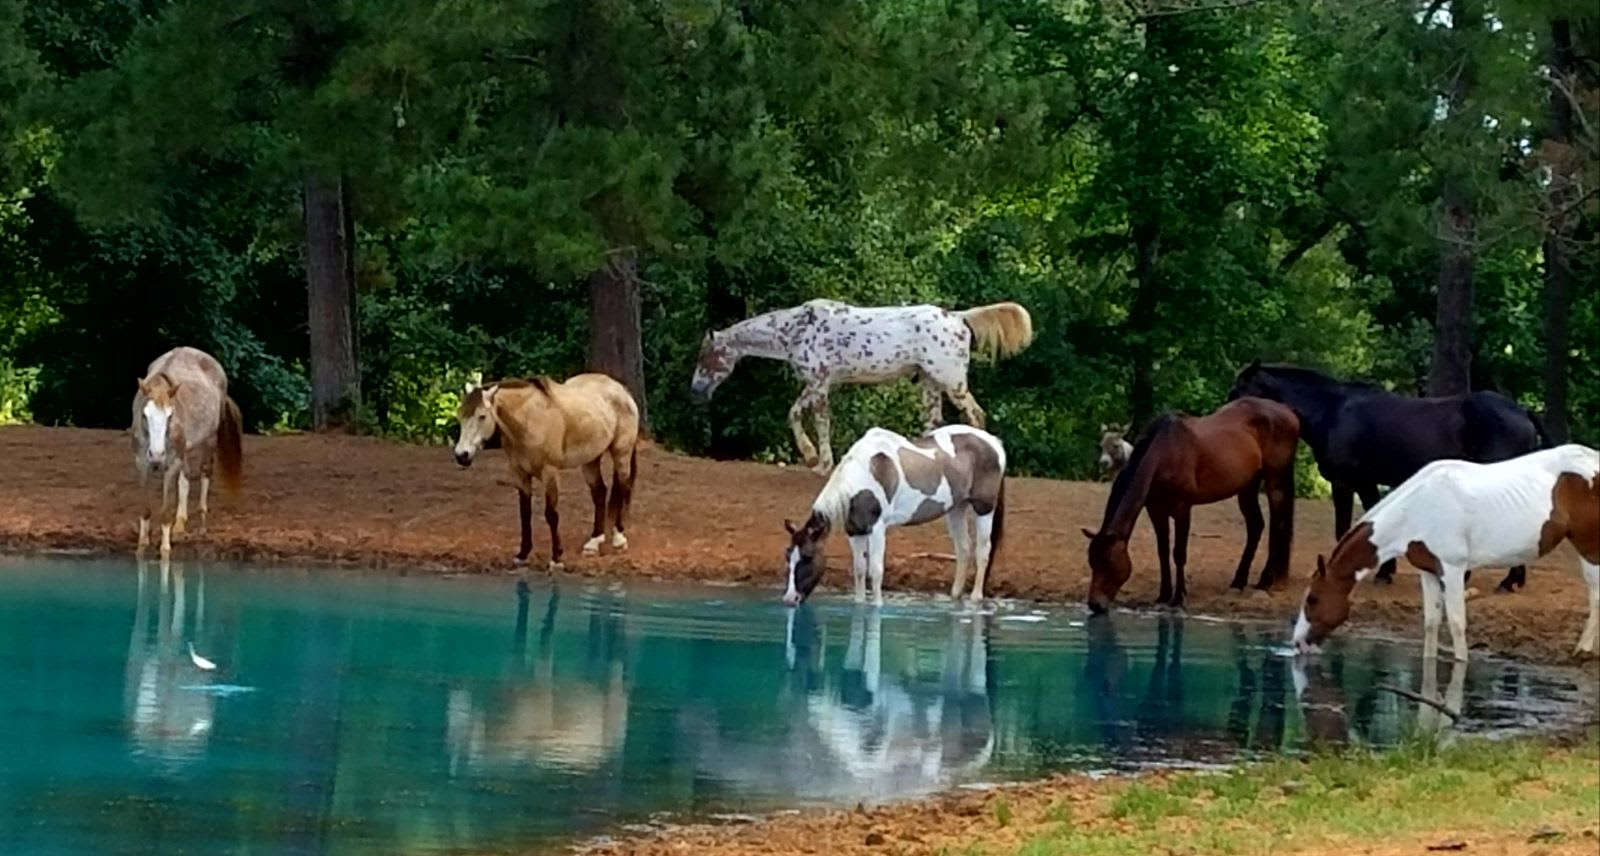 You'll love watching the horses!